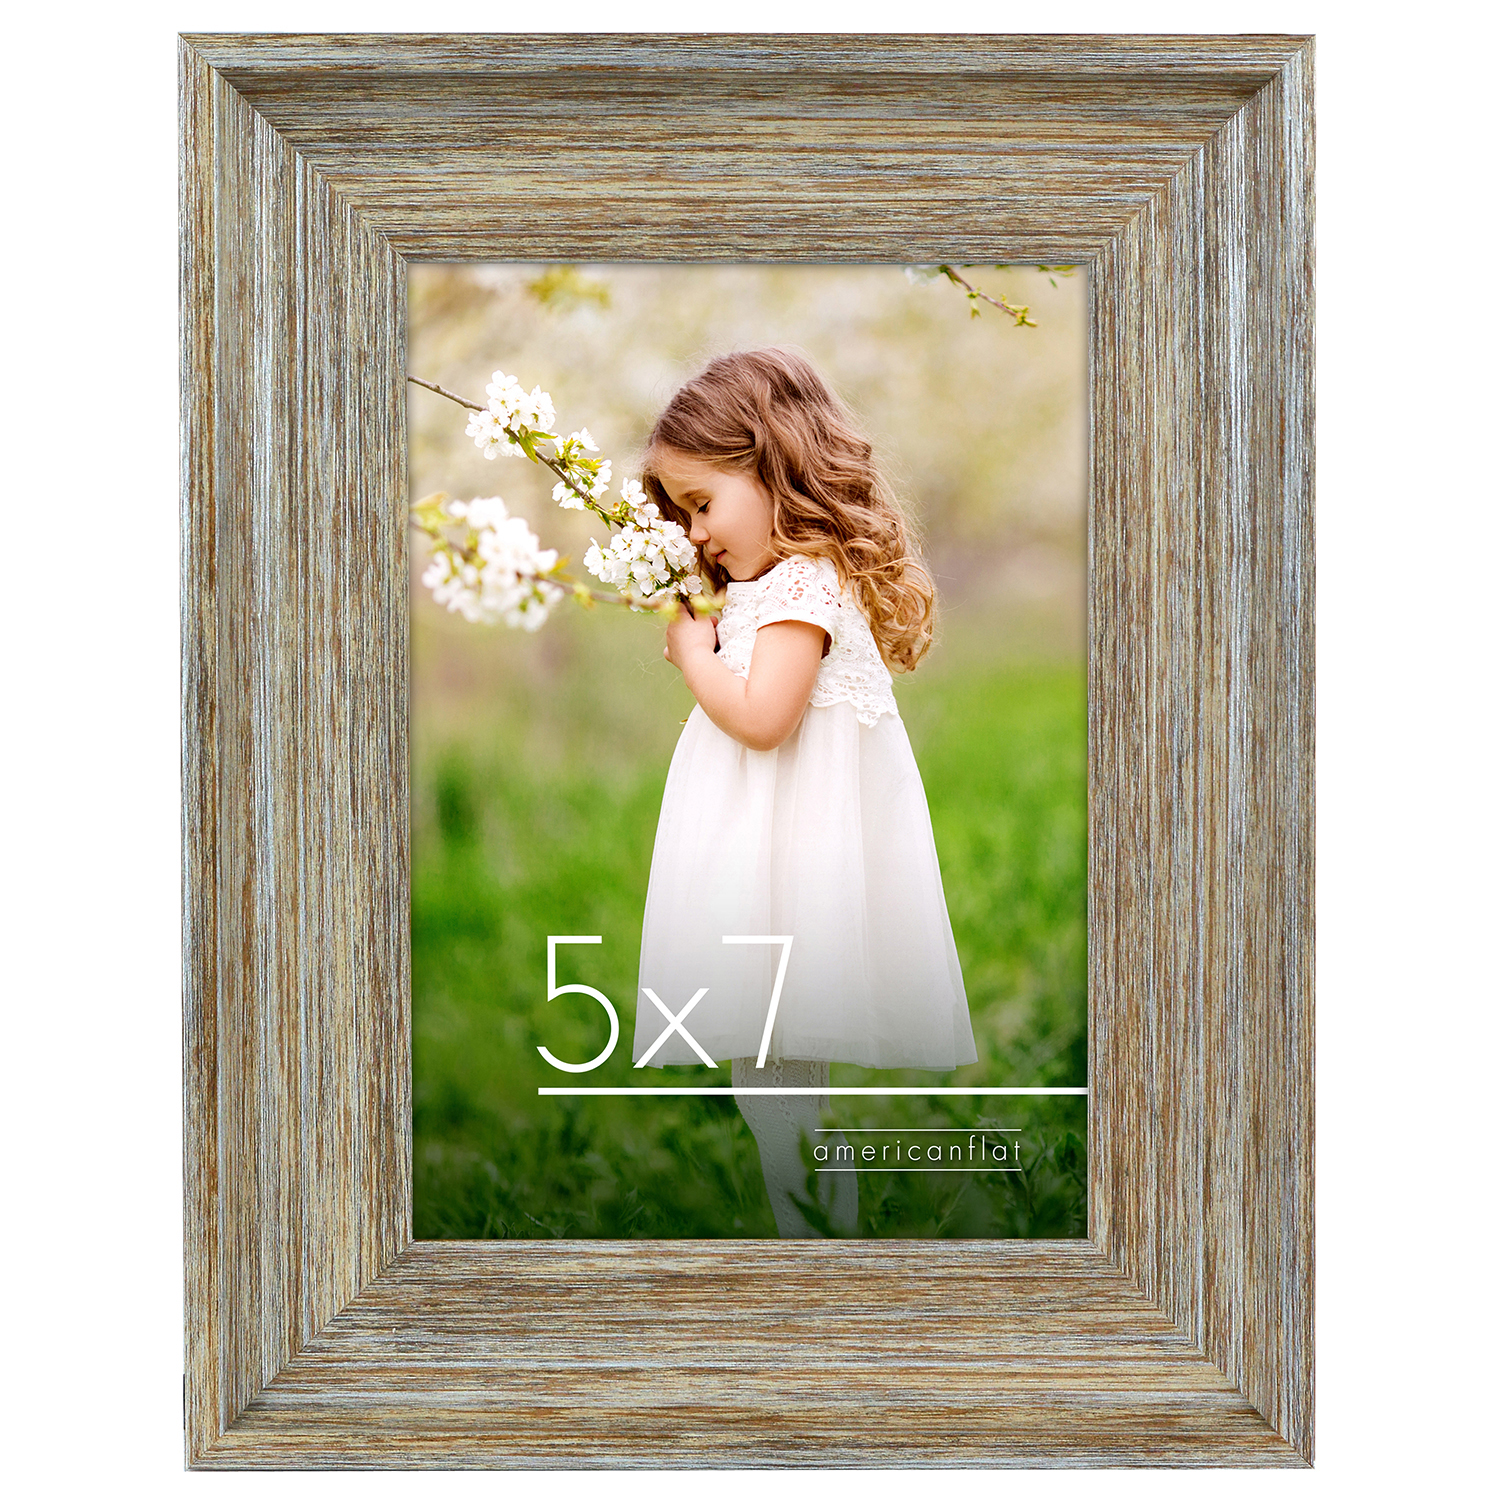 miniature 9 - Americanflat Wood Picture Frame 4x6 5x7 8x10 Wall Tabletop Easel Pick Size Color